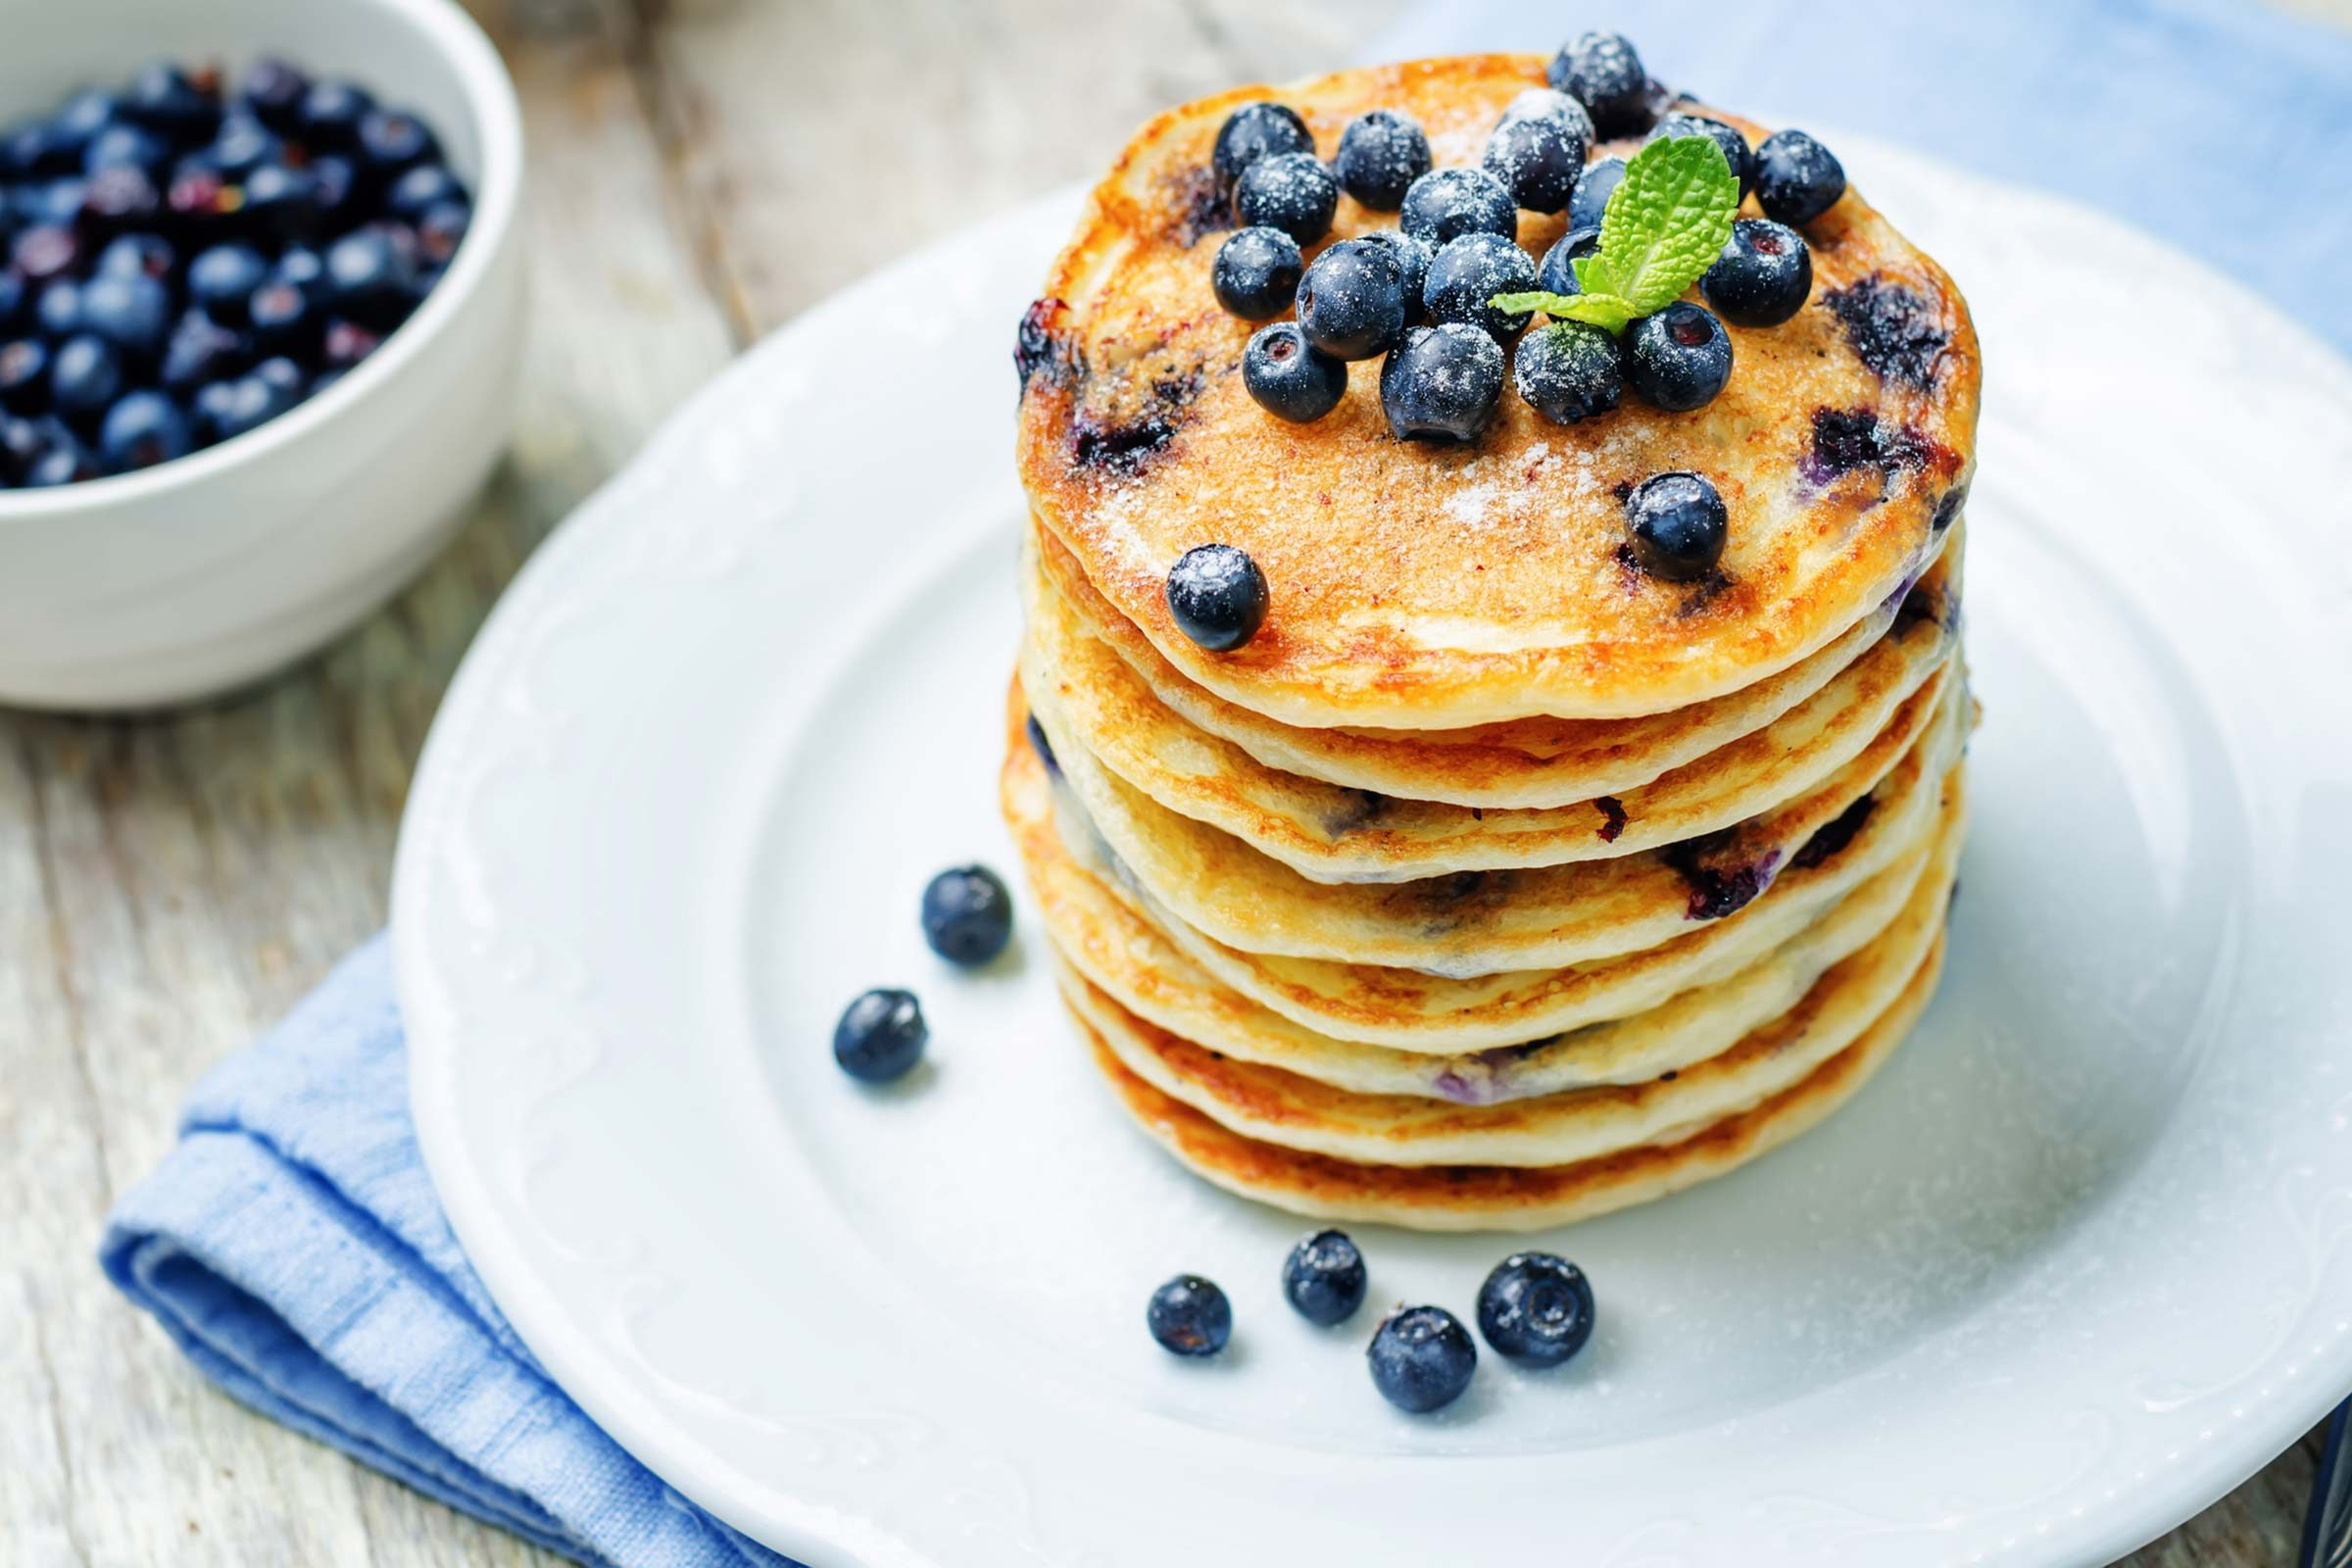 refuel after exercise | pancakes with blueberries